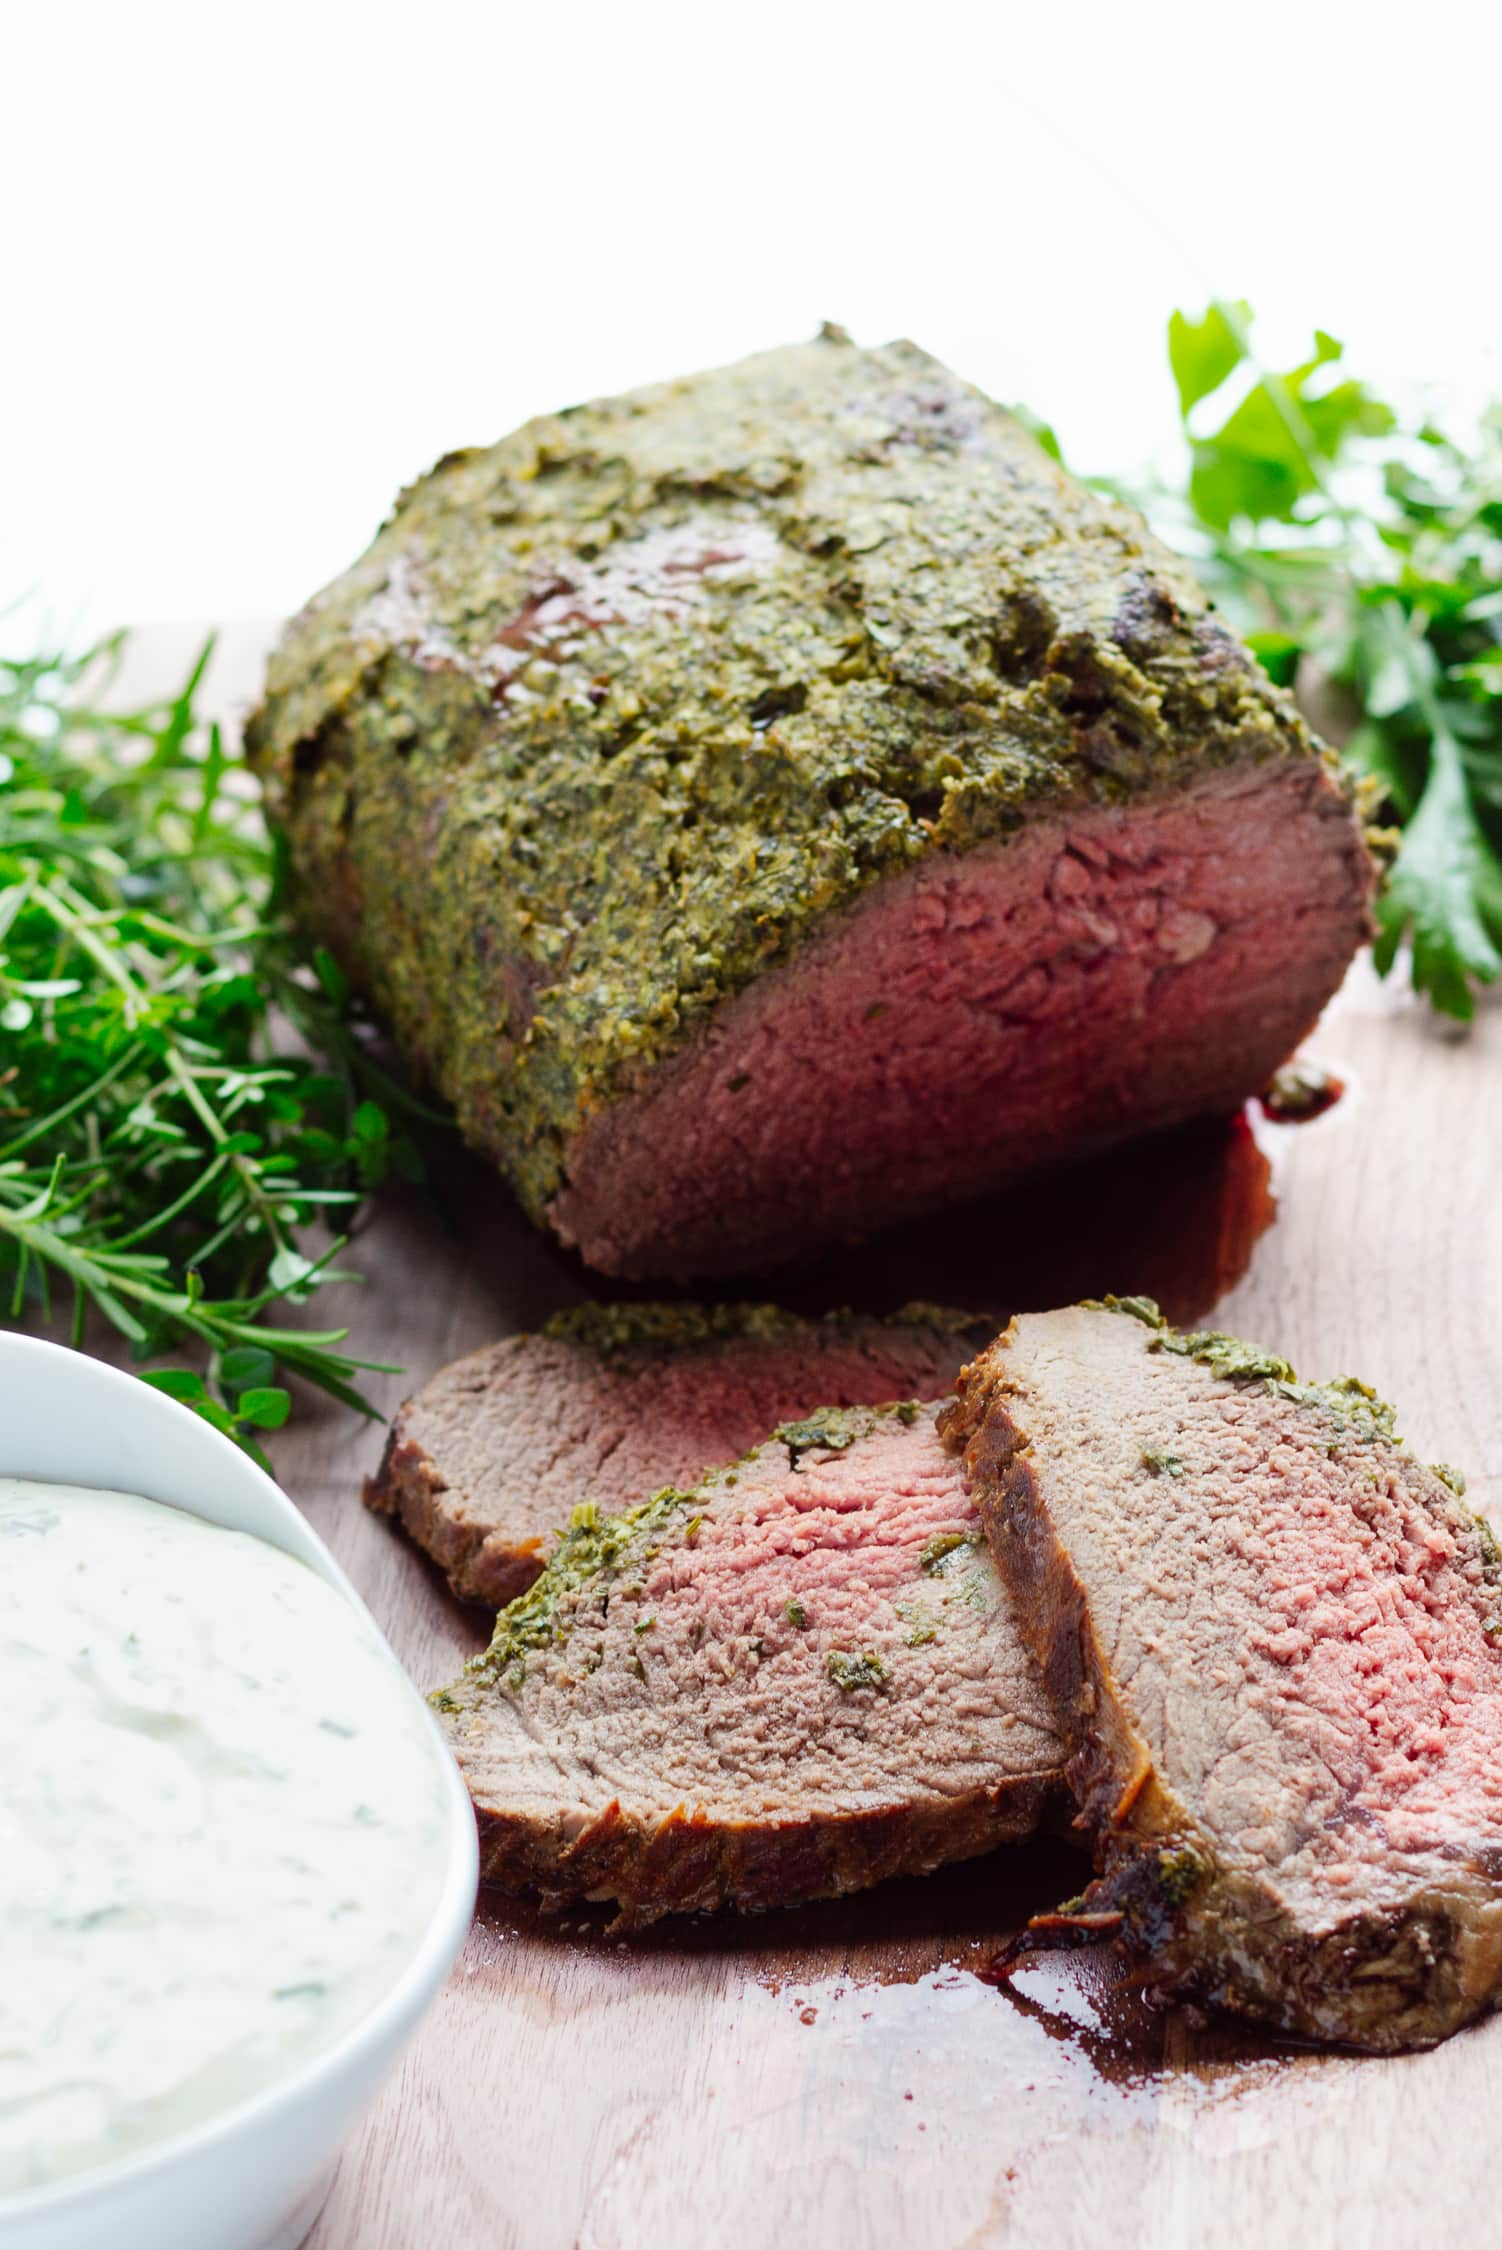 Herb Crusted Roast Beef on a wooden cutting board with 3 slices carved off in front. Also a bowl of creamy herb sauce and fresh herbs on the board.